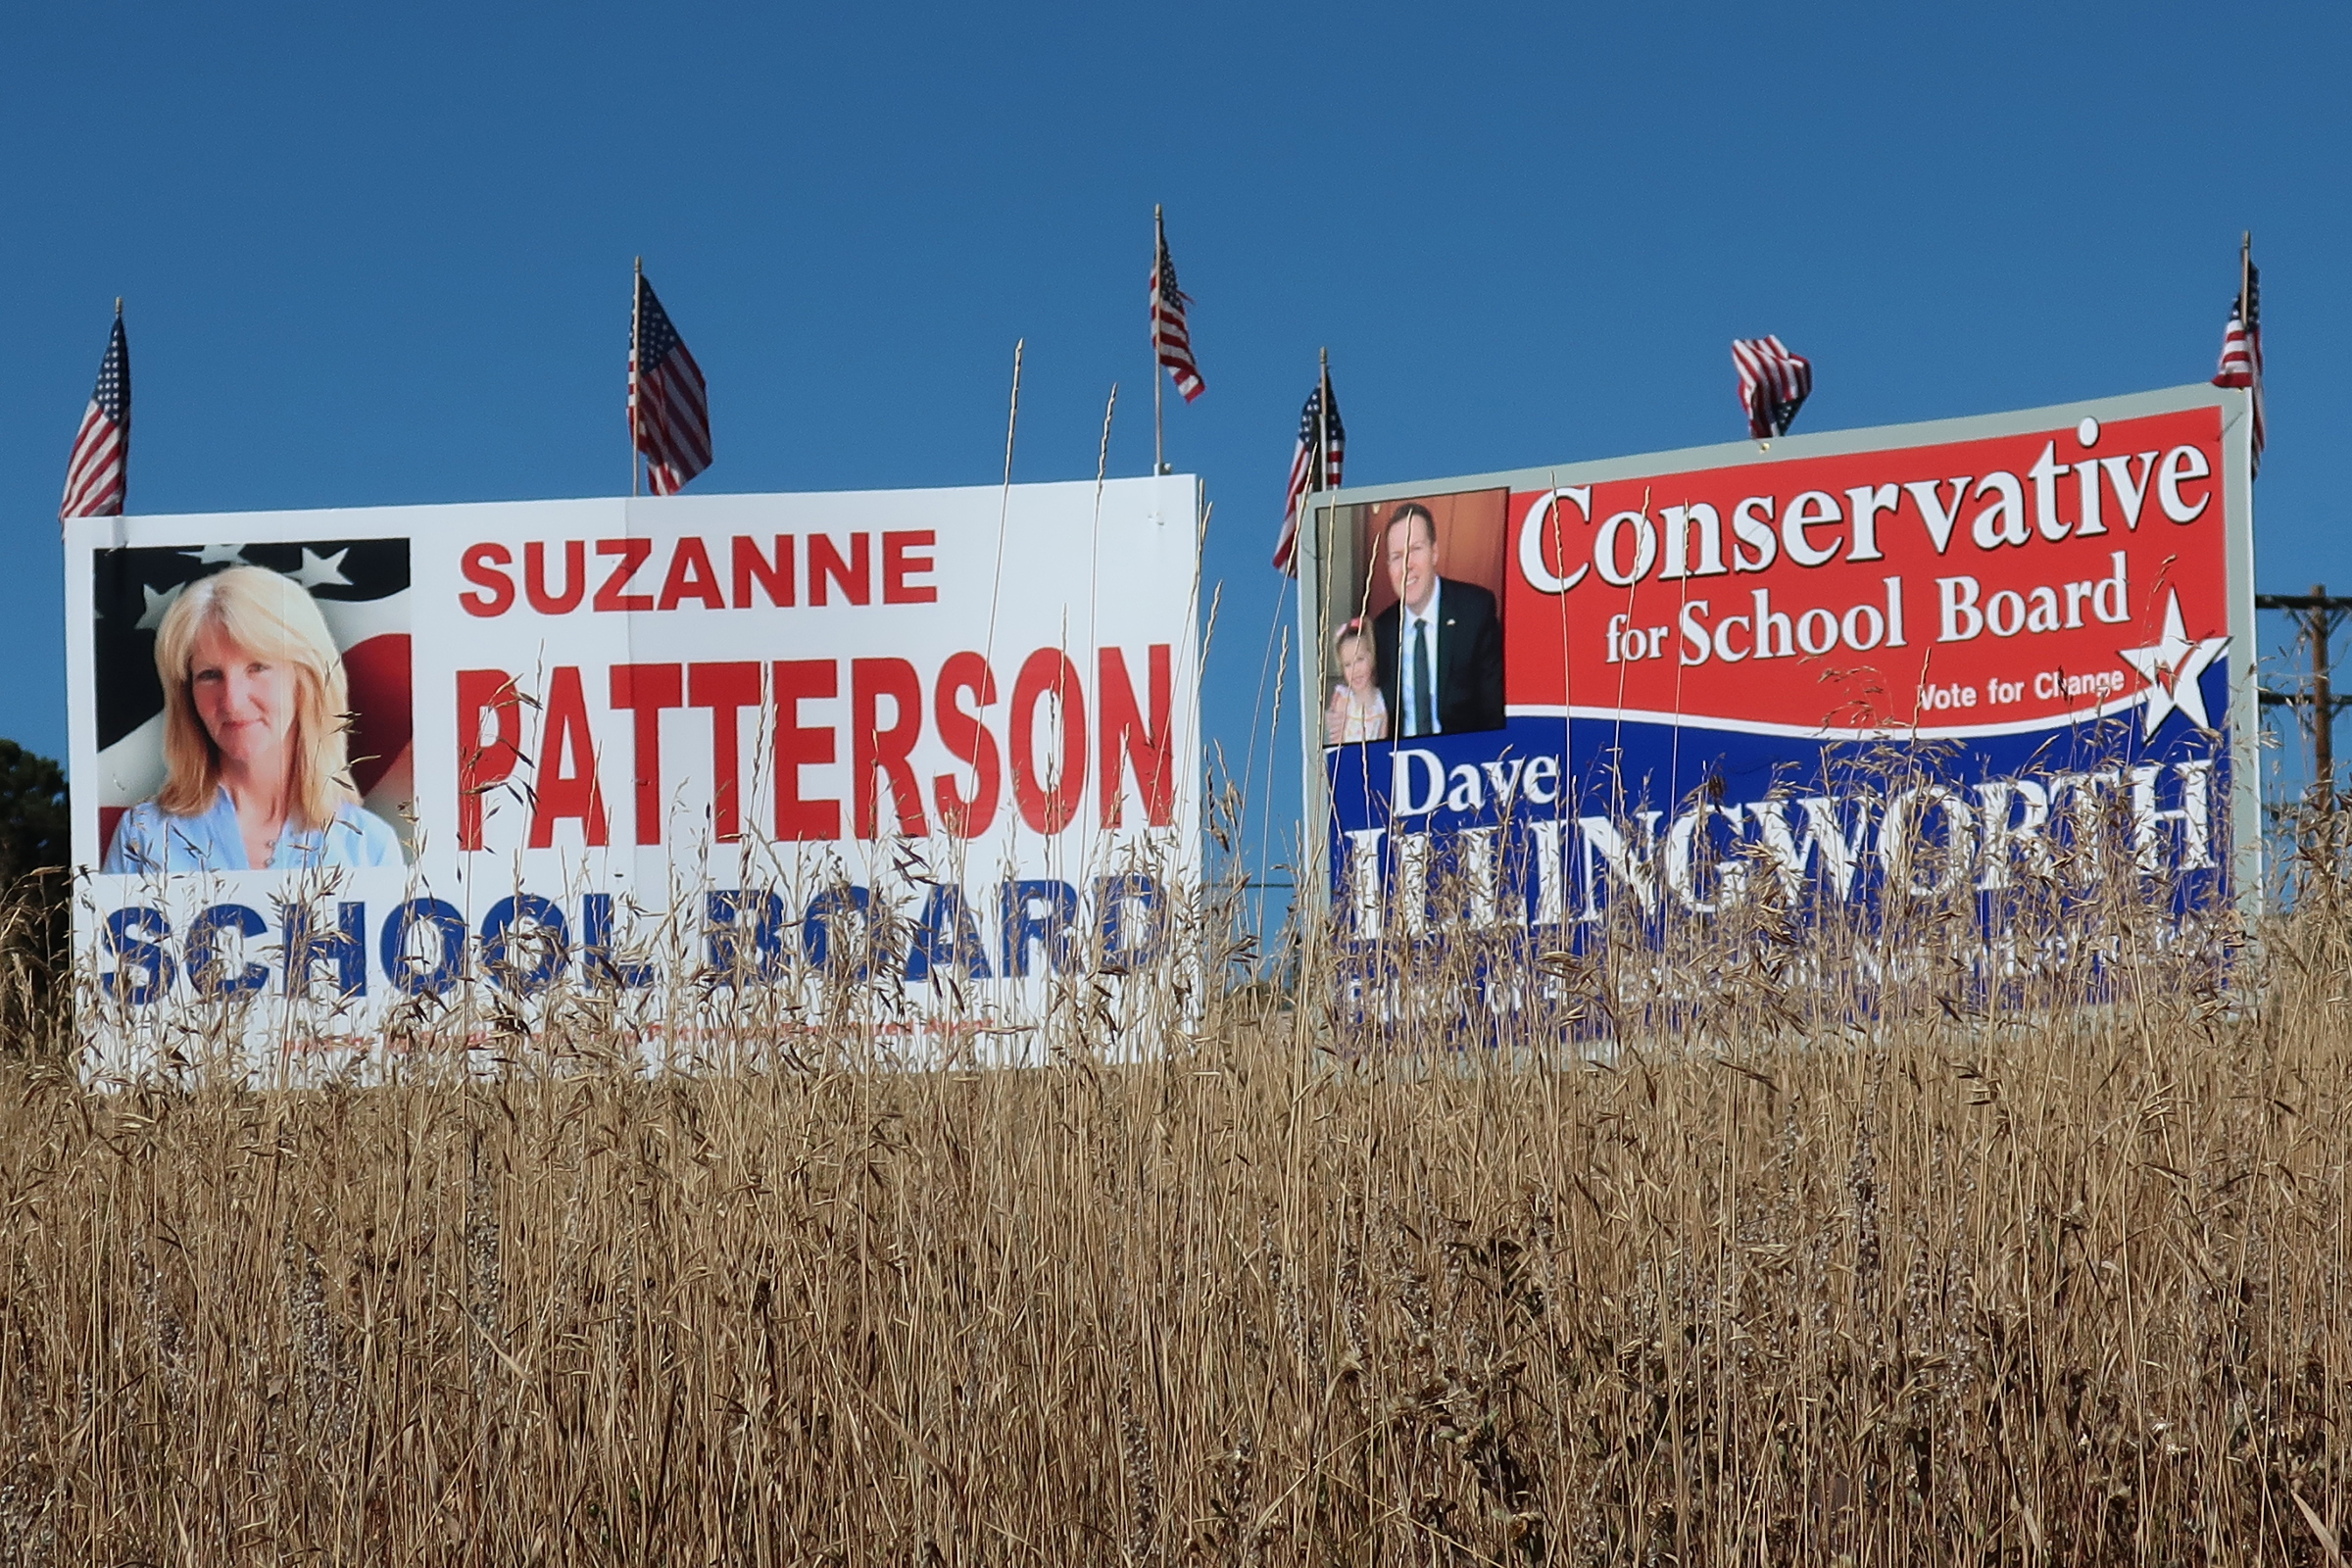 """Campaign signs in Woodland Park in Teller County often label certain candidates as """"conservative."""" There has been an increase in overt politicization of traditionally nonpartisan school board races. The Teller County Republican Party has donated to four candidates on one of the slates."""